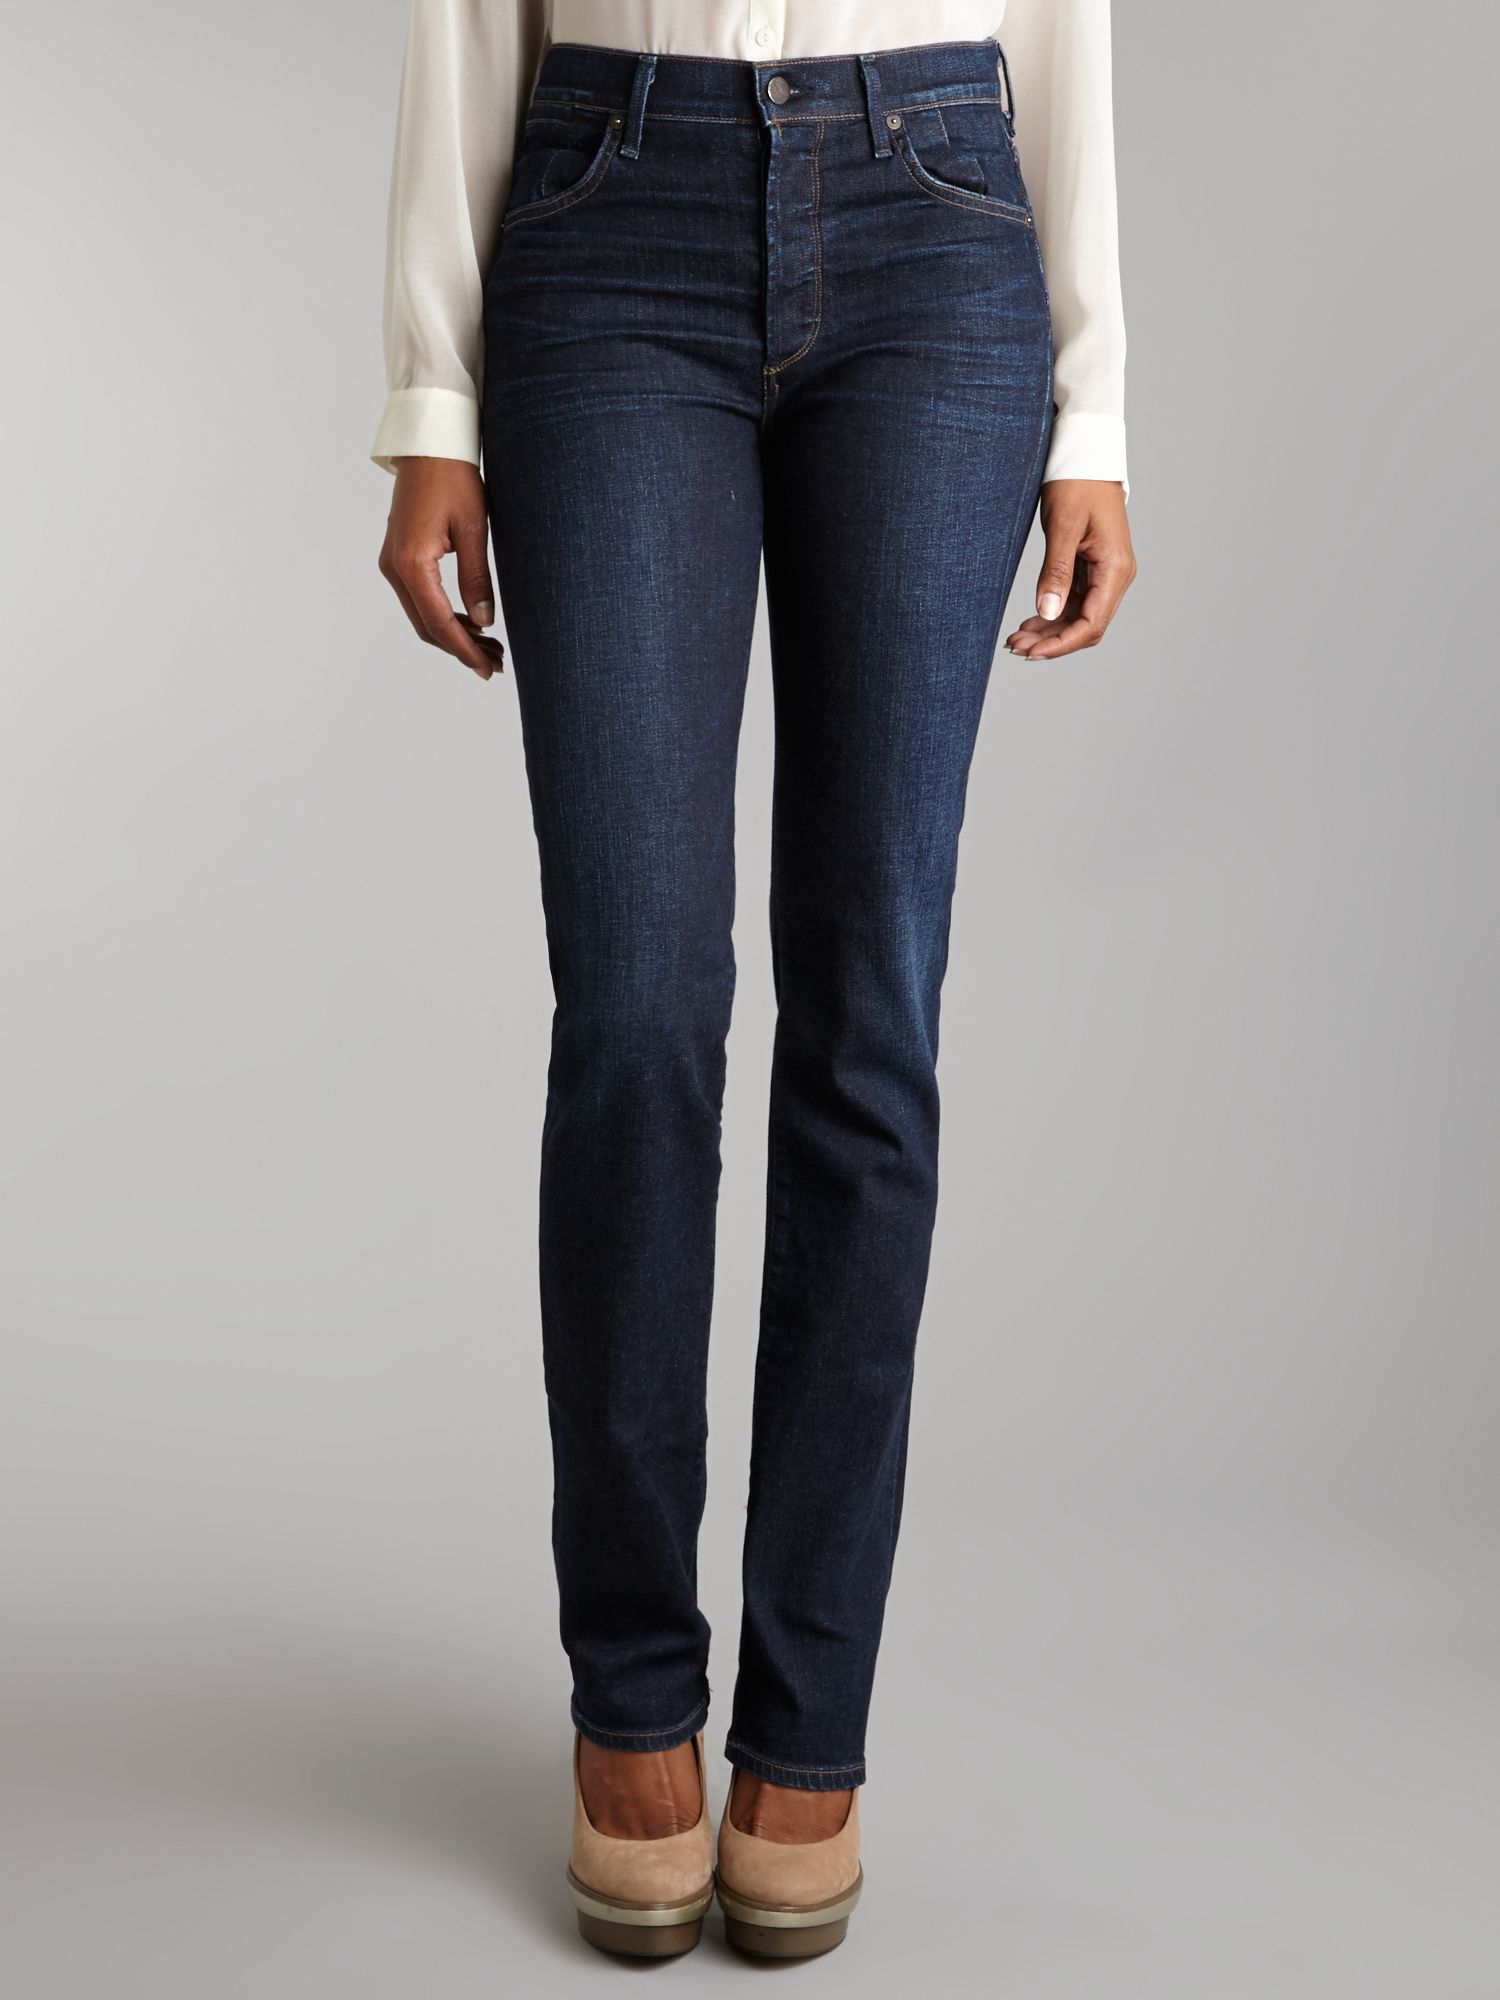 Arley high-rise straight leg jeans in Icon